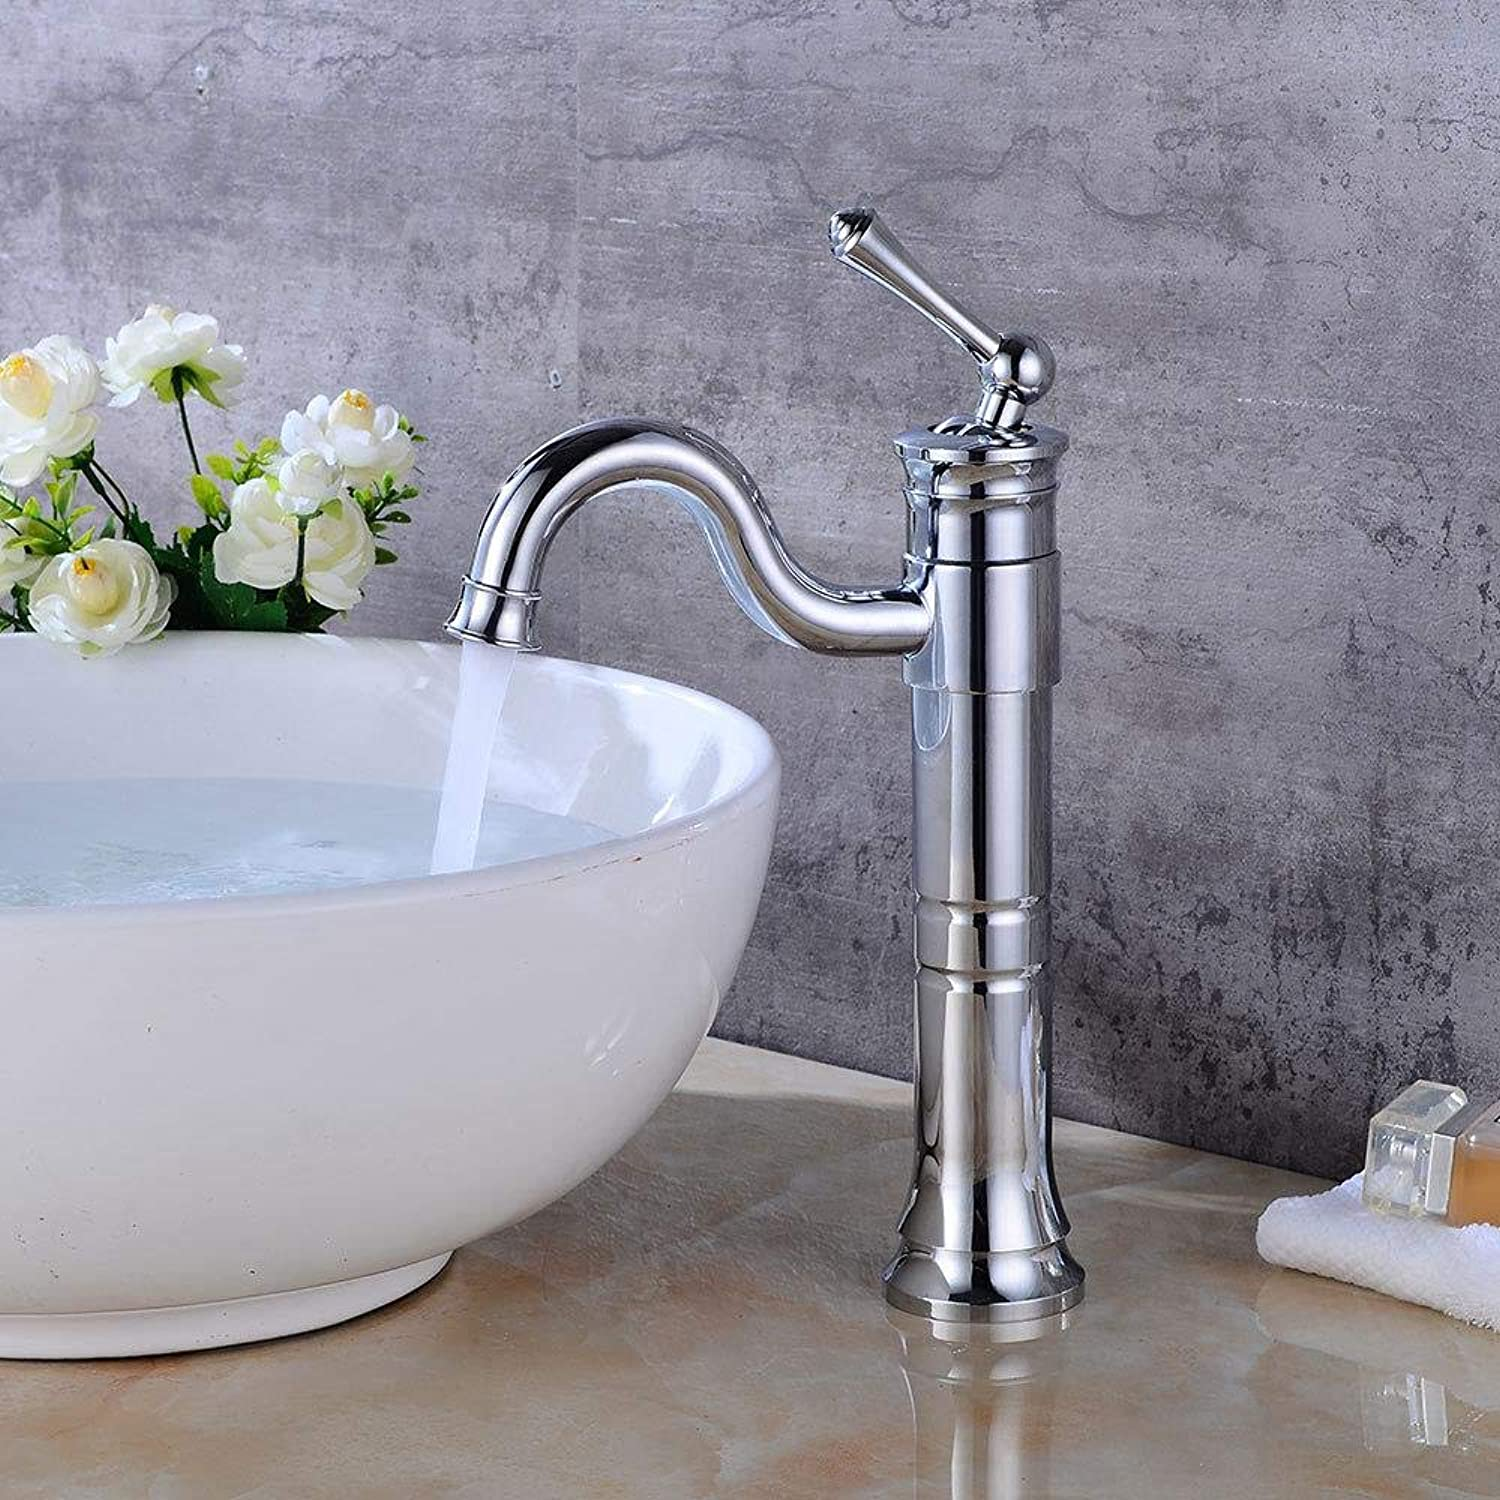 Tap Electroplating Basin Faucet Above Counter Basin redating Faucet Bathroom Waterfall Hot and Cold Faucet Retro Basin Faucet